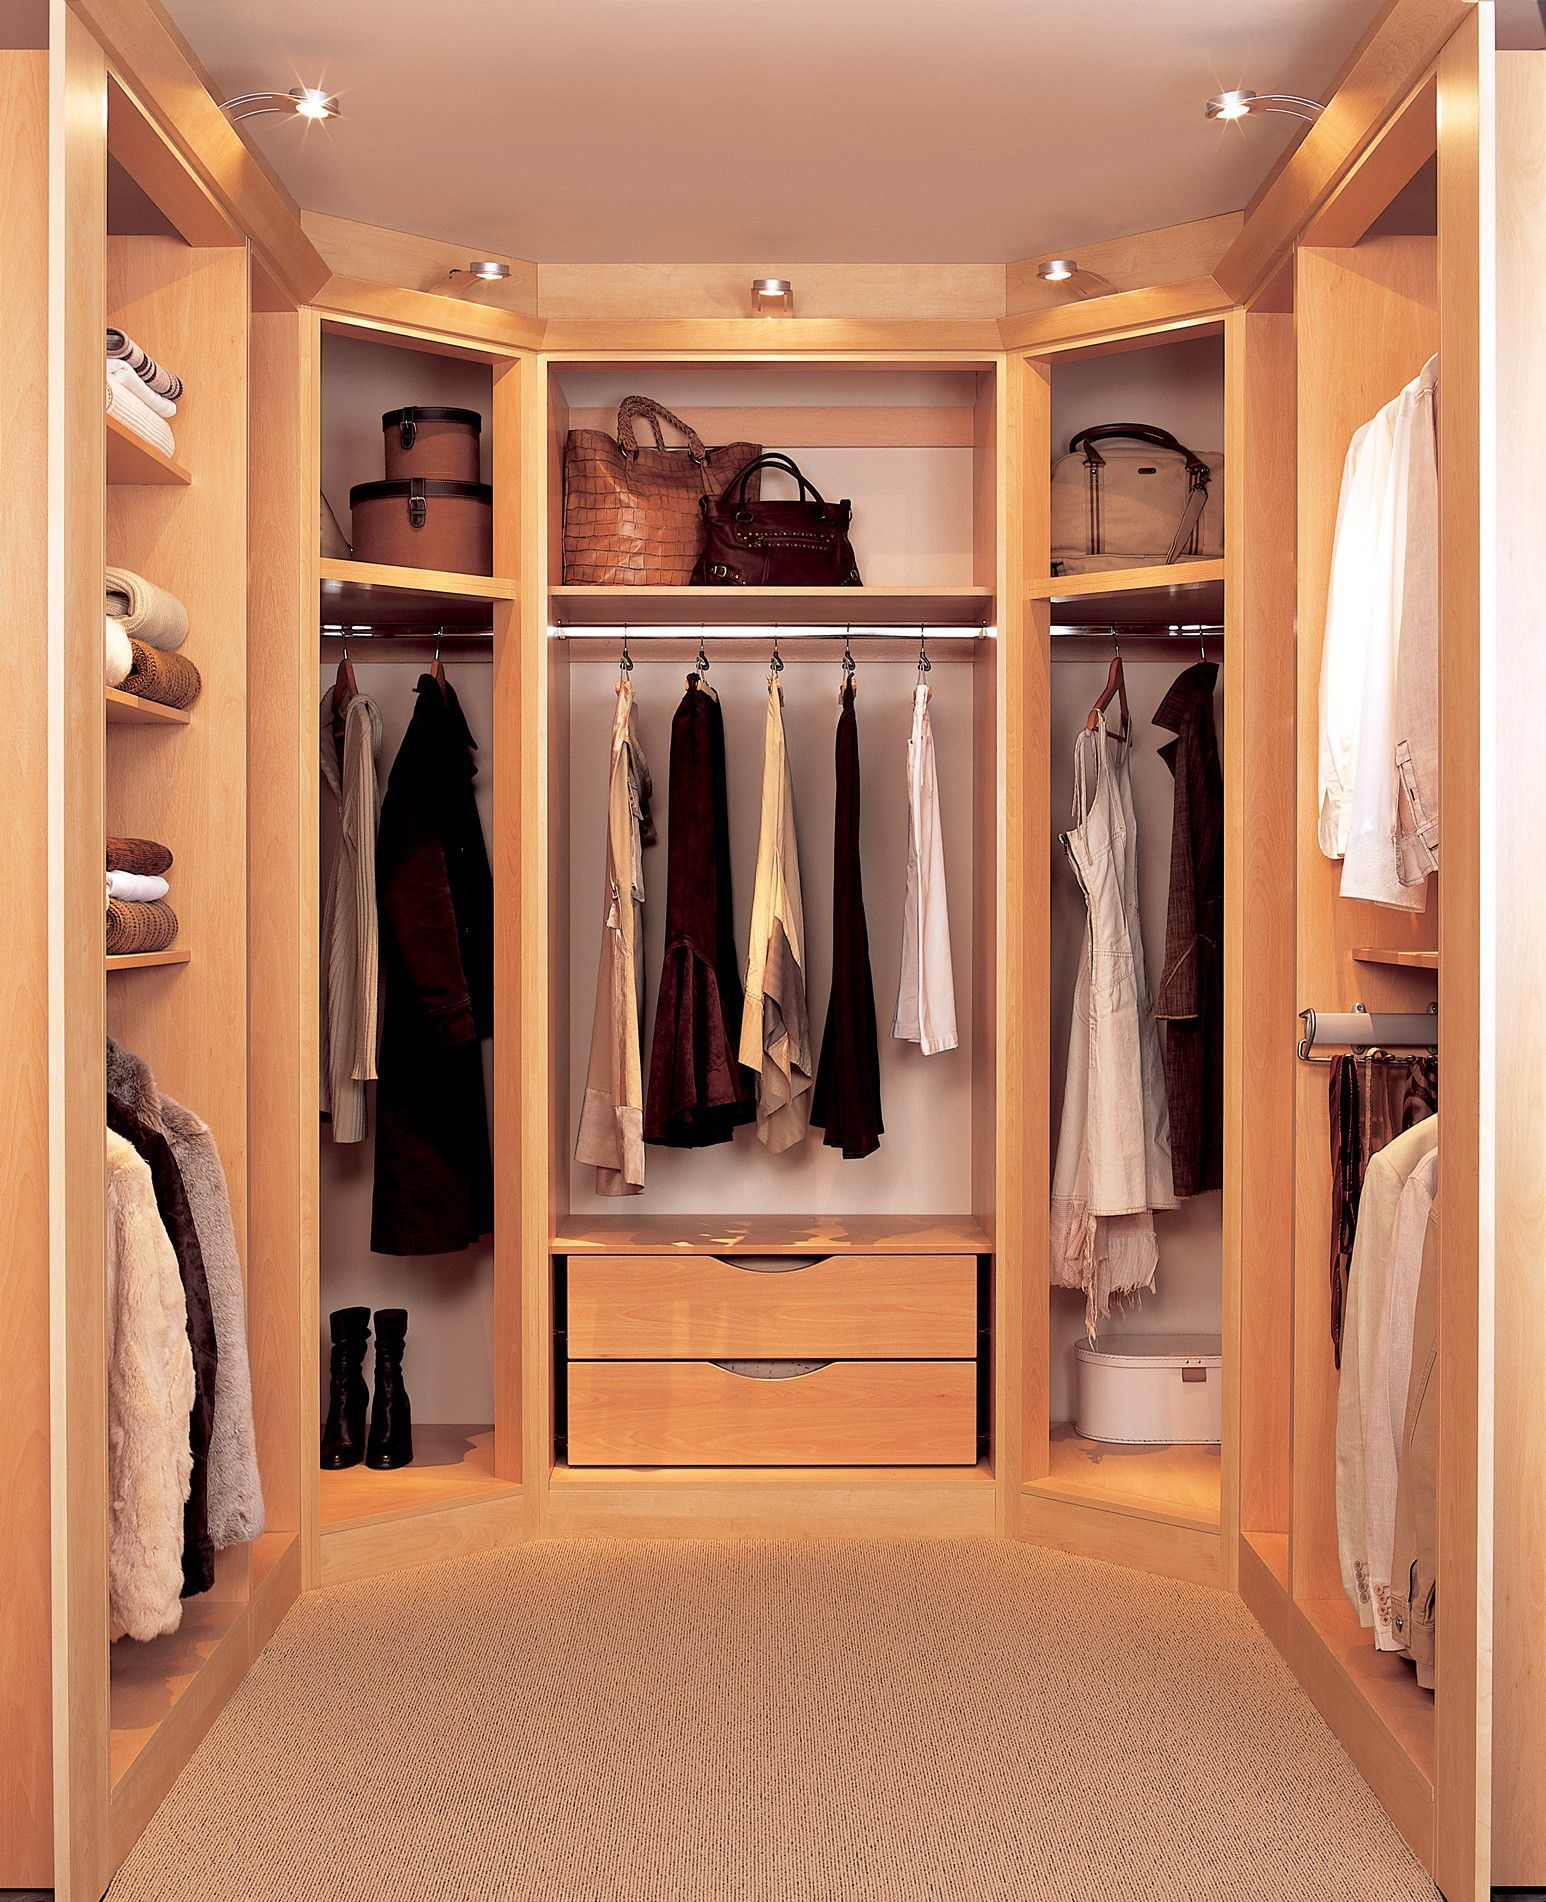 Superbe Minimalist Closet Storage Ideas For Small Walk In Closet With Oak Drawers  And Shelves